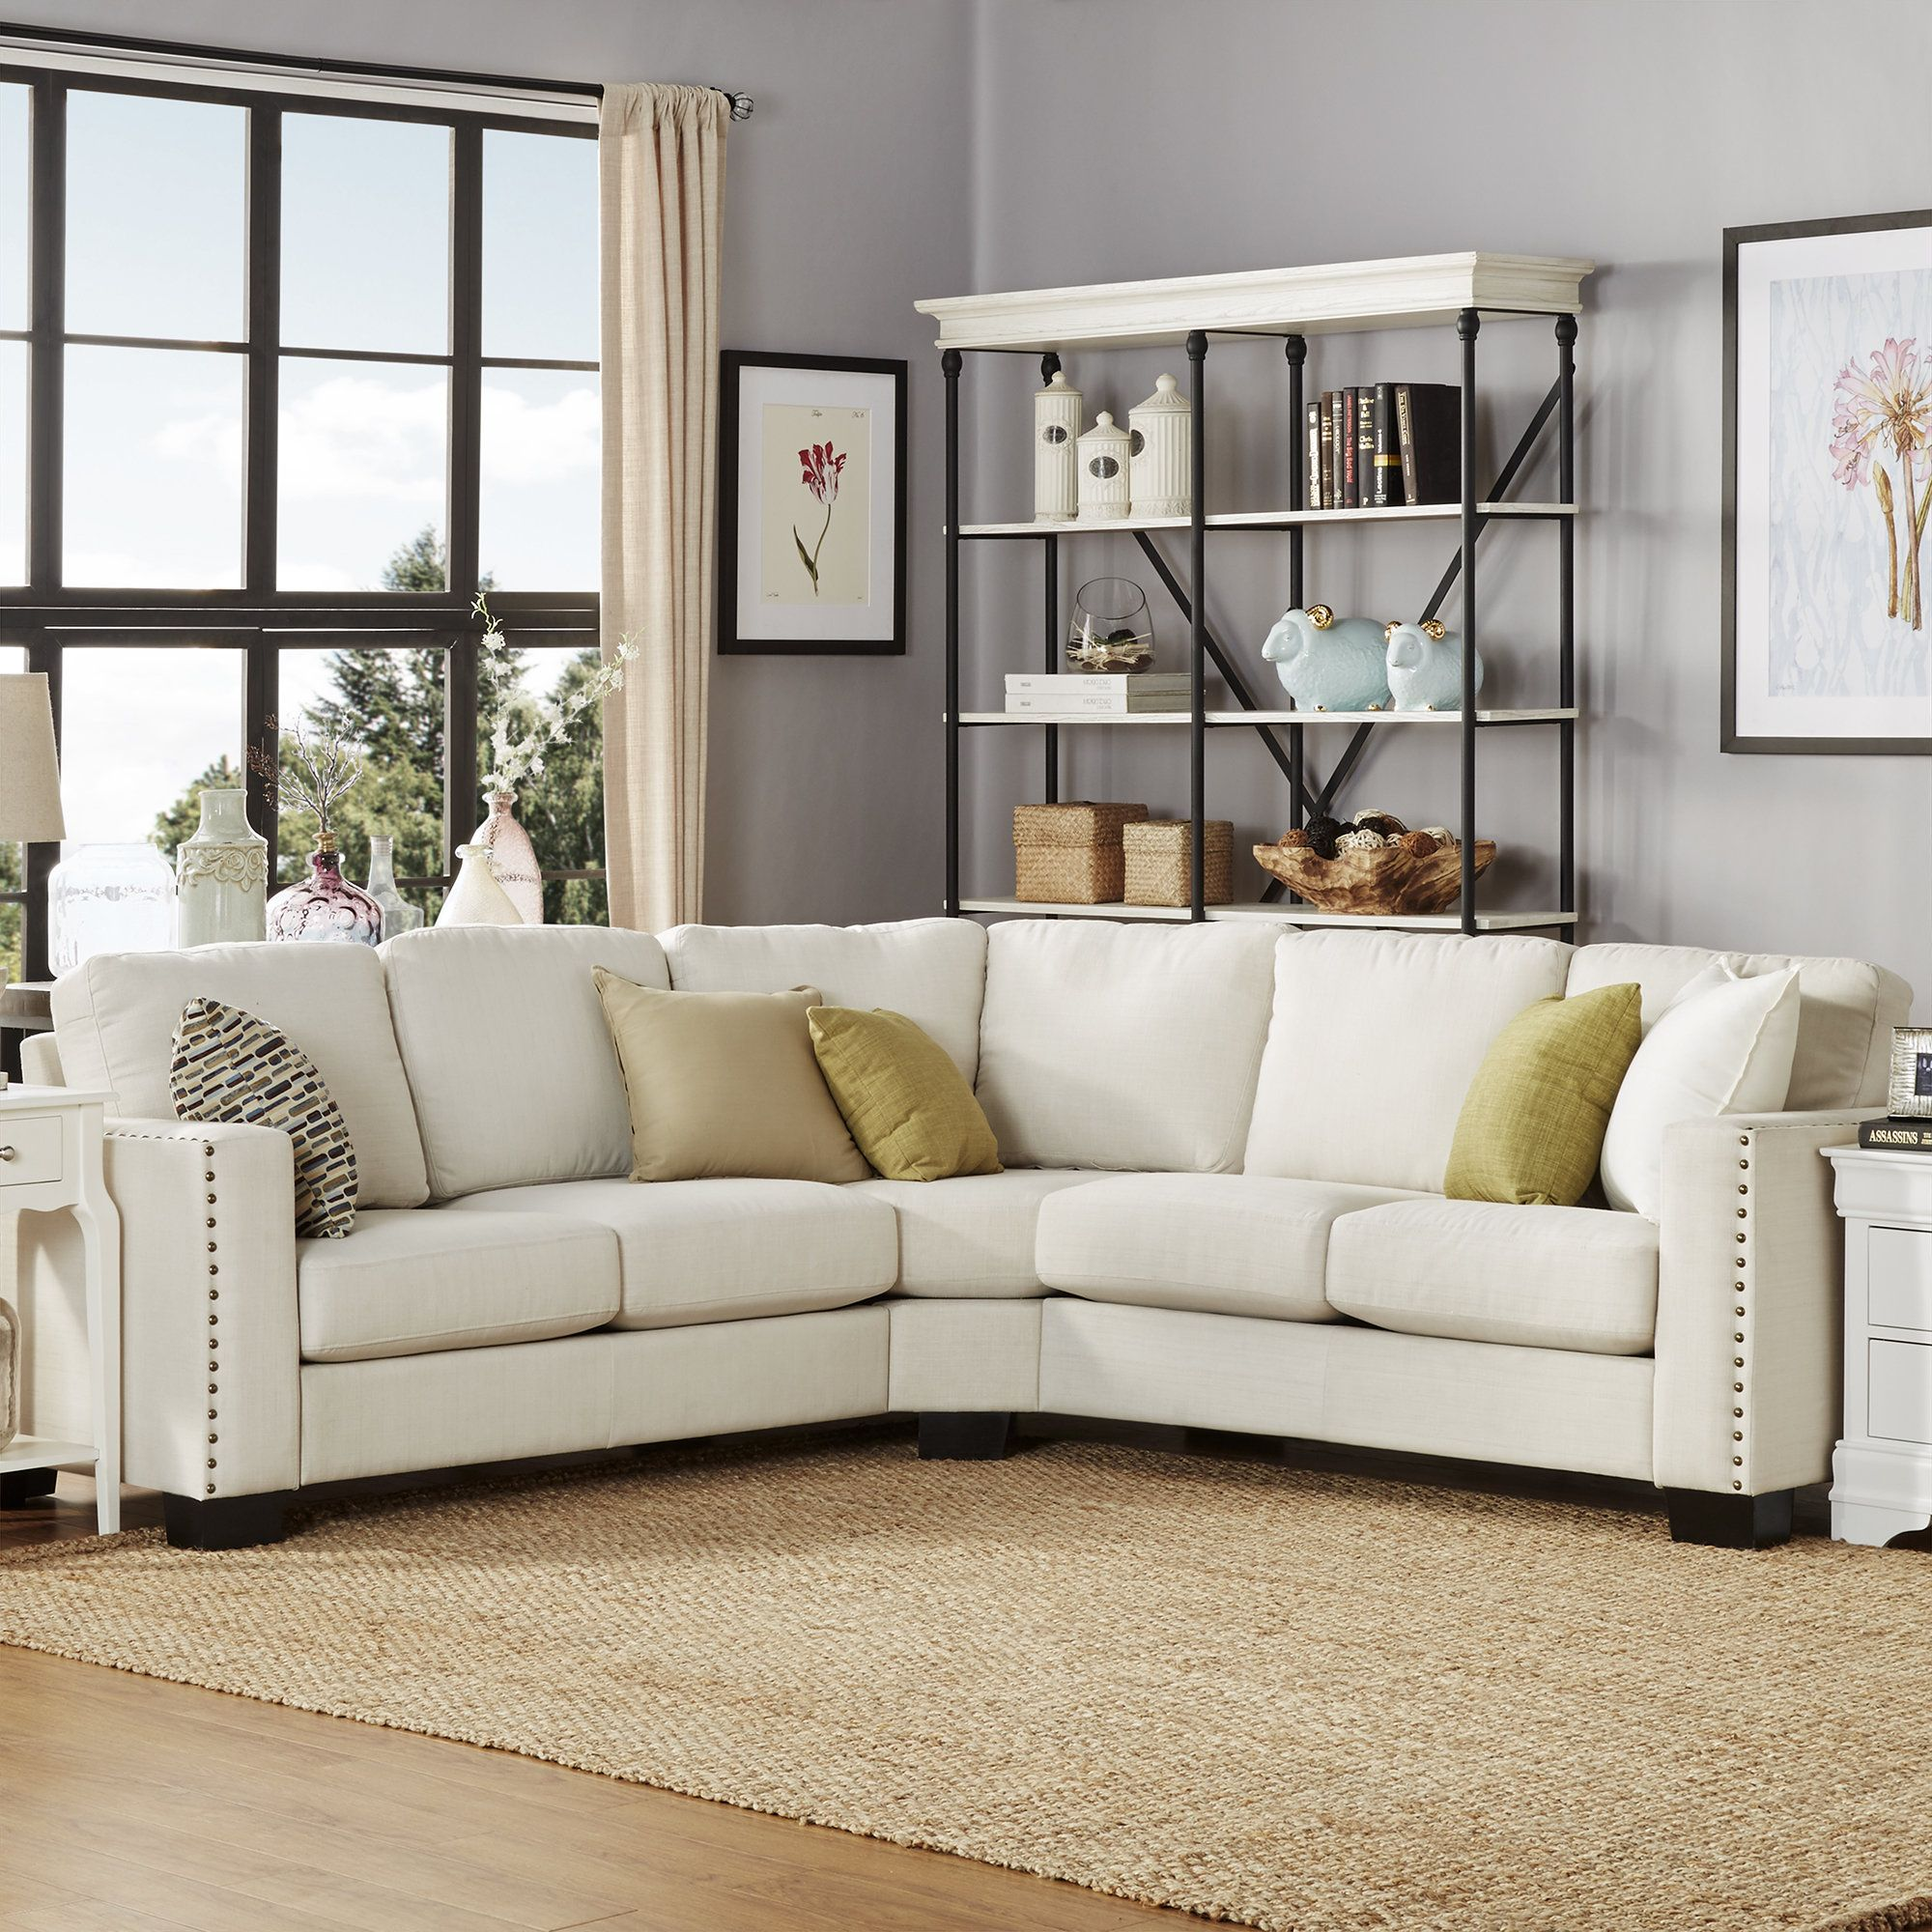 Blackston 5 Seat Nailhead Trimmed Linen L Shaped Reversible Chaise Sectional Sectional Sofa Couch Sectional Sofa Sectional